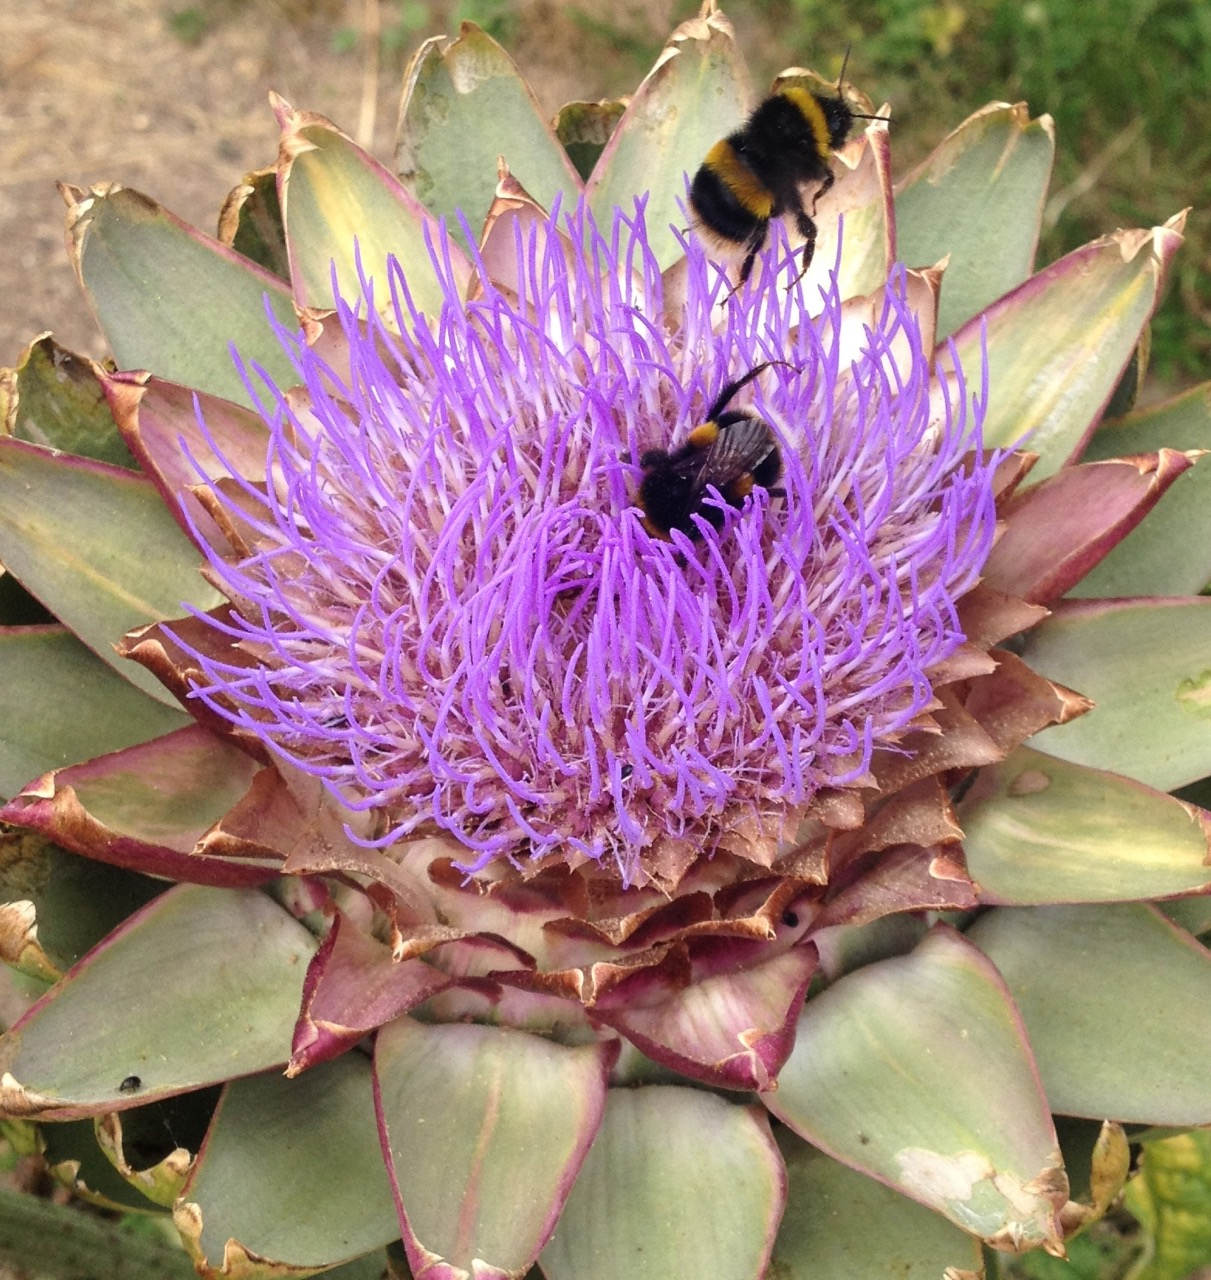 We grow a mix of flowers and produce in the garden but at least some of the foods we allow to flower in case they are attractive to insects. Bees love globe artichokes! A single bumblebee can spend many minutes crawling over the purple flower, which gives ample opportunity for even an average camera phone to get at least one photo in focus.